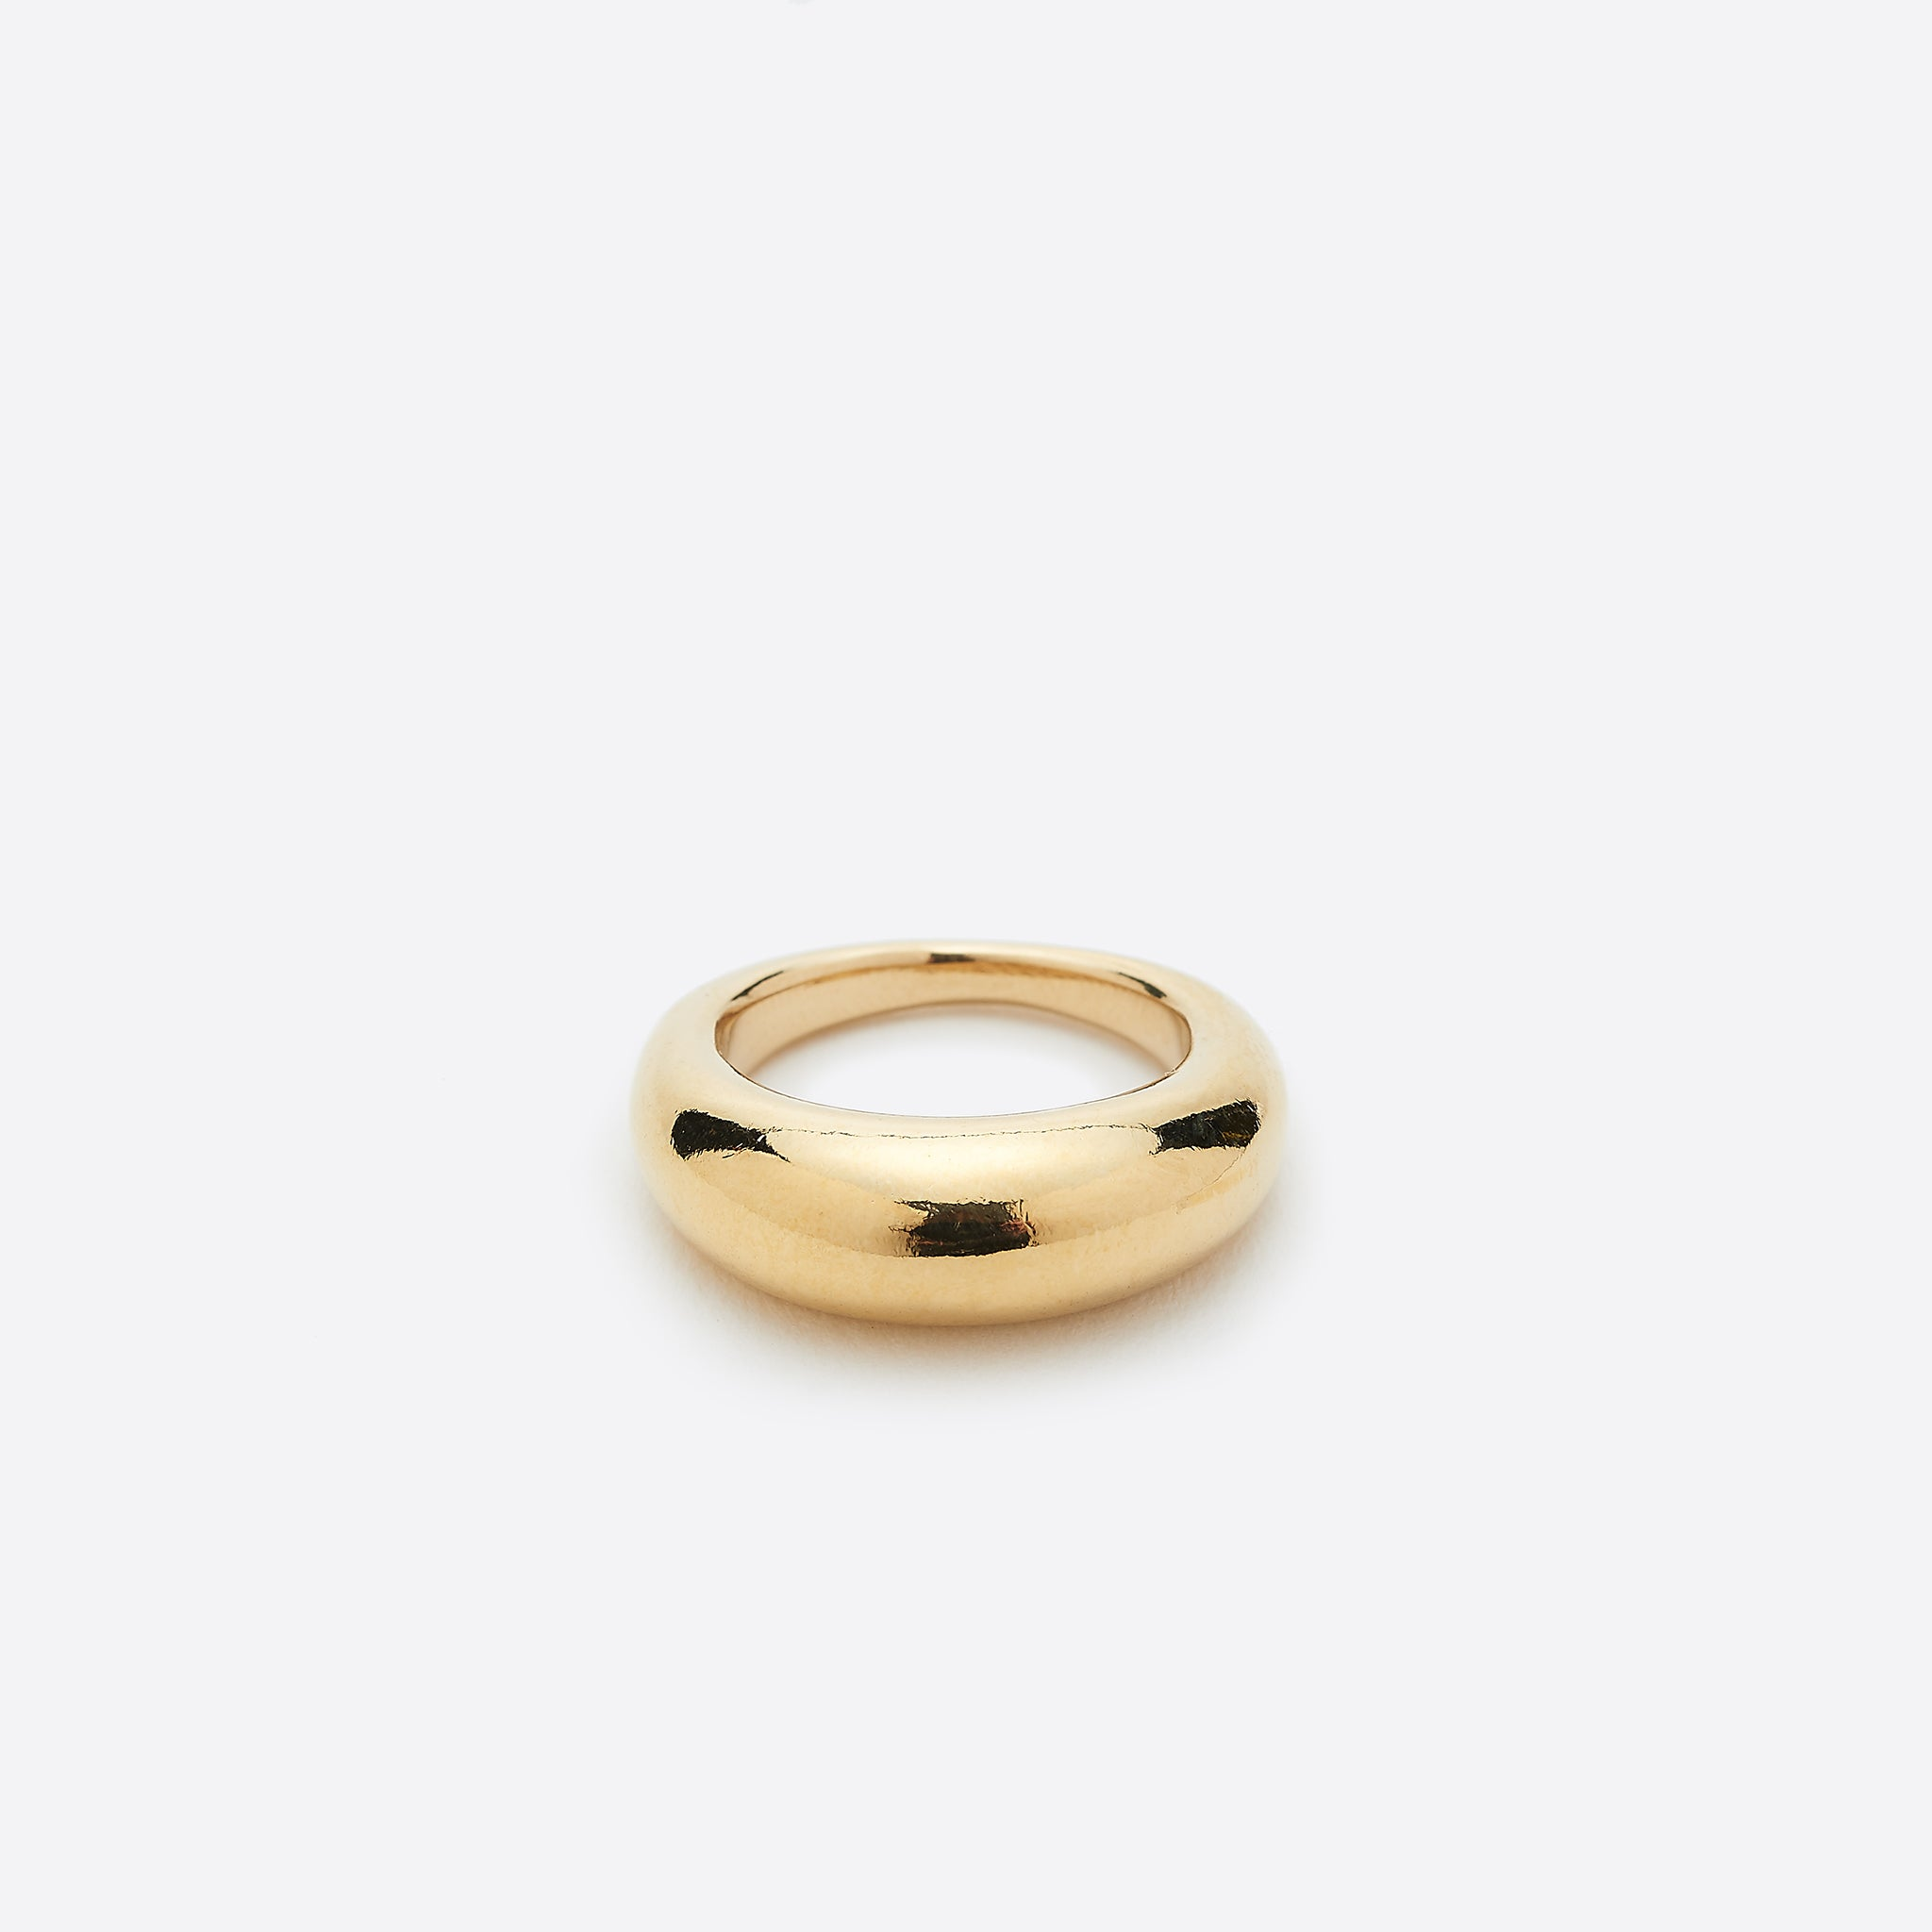 Wolf Circus Emeile Grande Ring in Gold